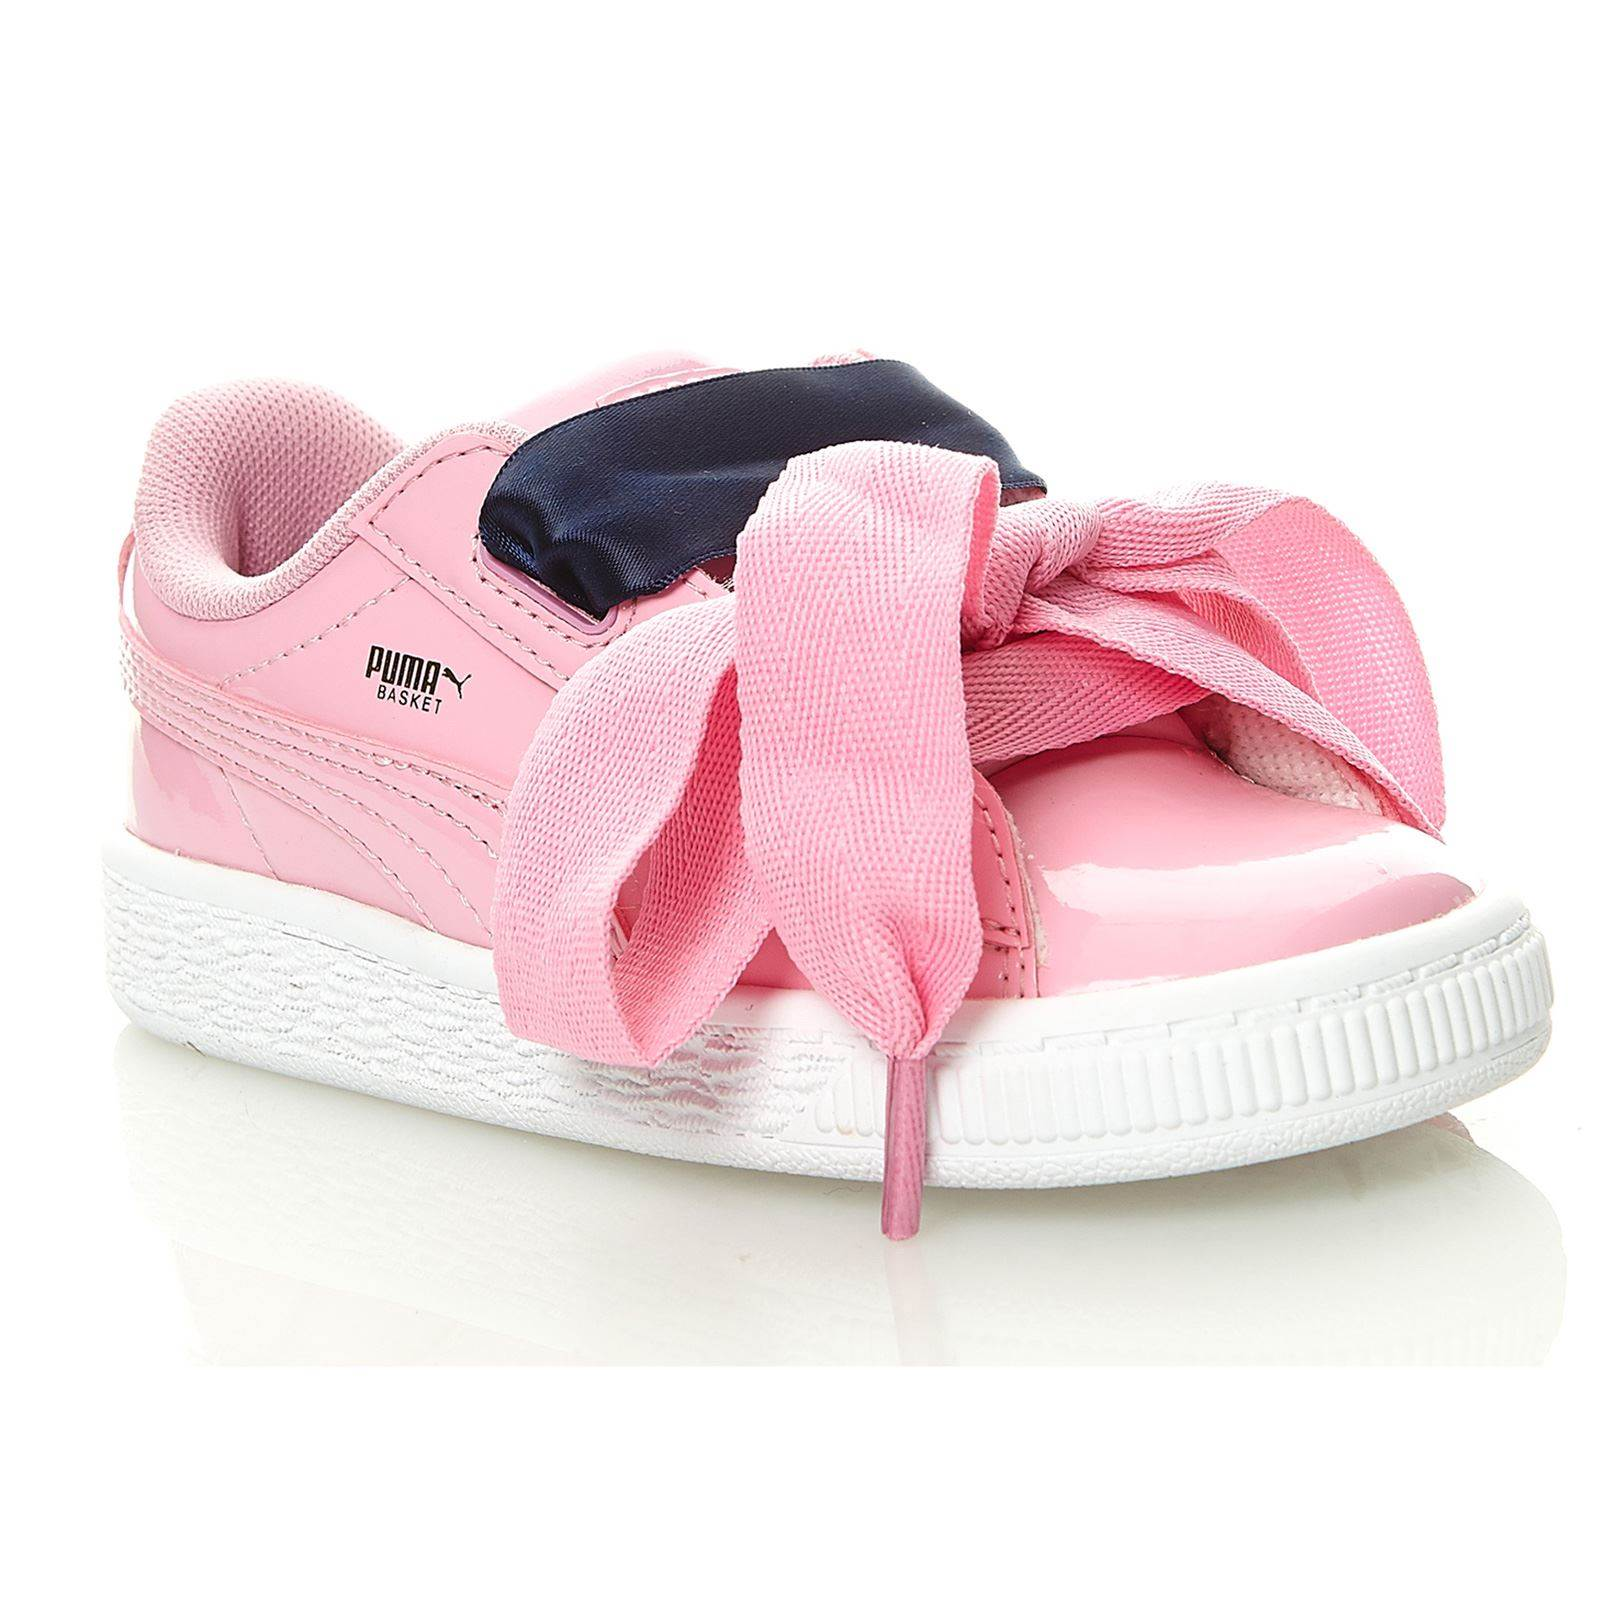 puma rose noeud papillon